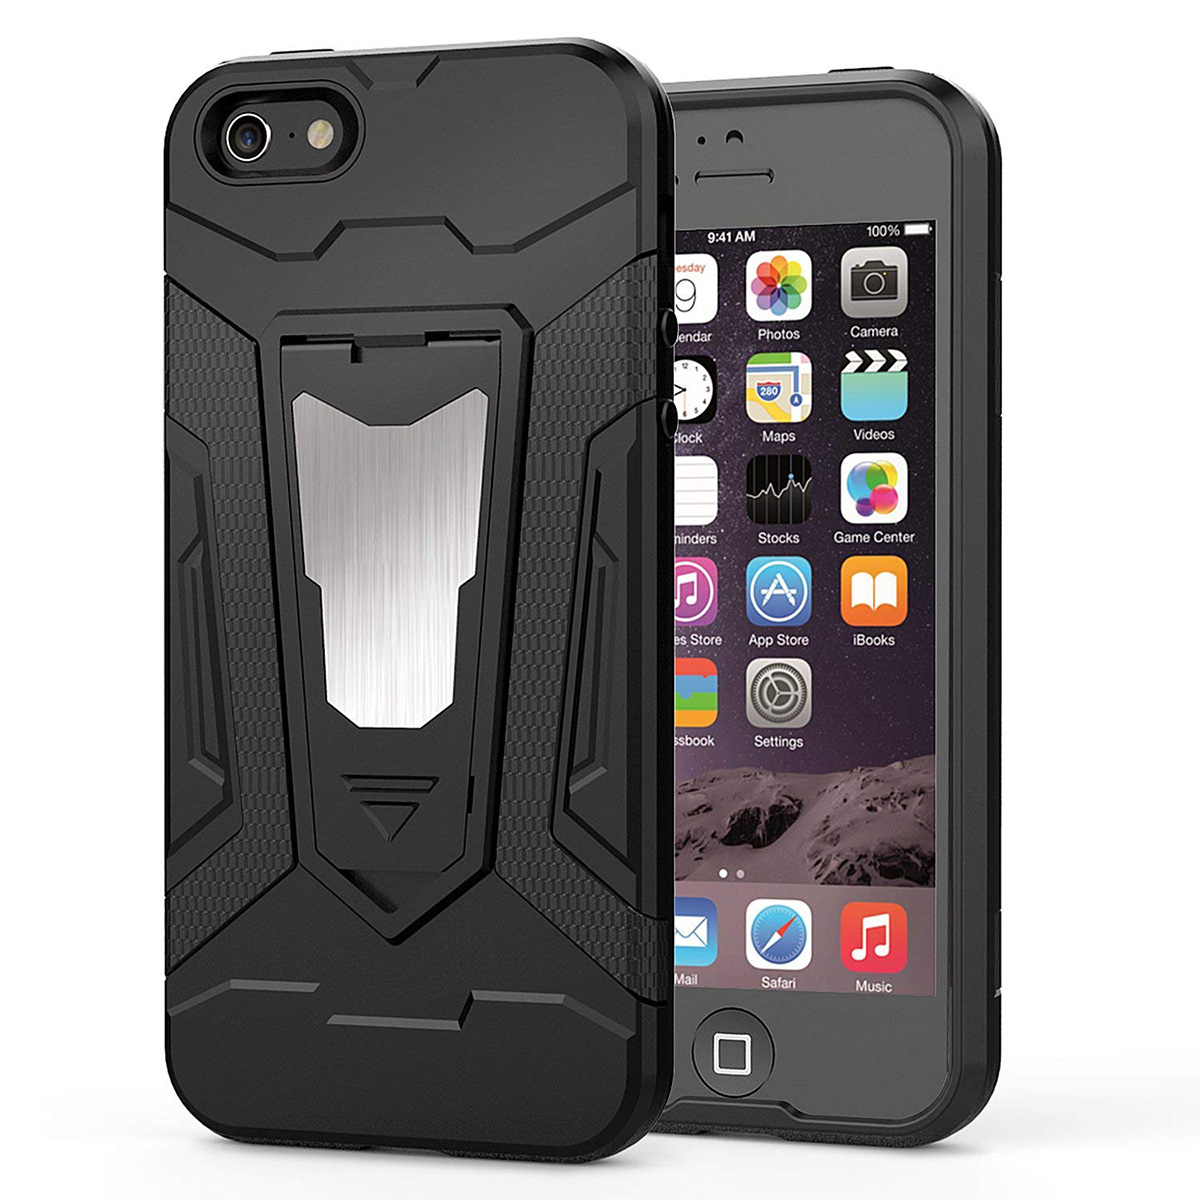 Yokata Hard Case Kickstand For <font><b>iphone</b></font> 7 6 6s 8 plus Cover For Black 3 in <font><b>1</b></font> Magnet Car Mount TPU PC Coque For <font><b>iphone</b></font> X <font><b>5</b></font> 5s Se image